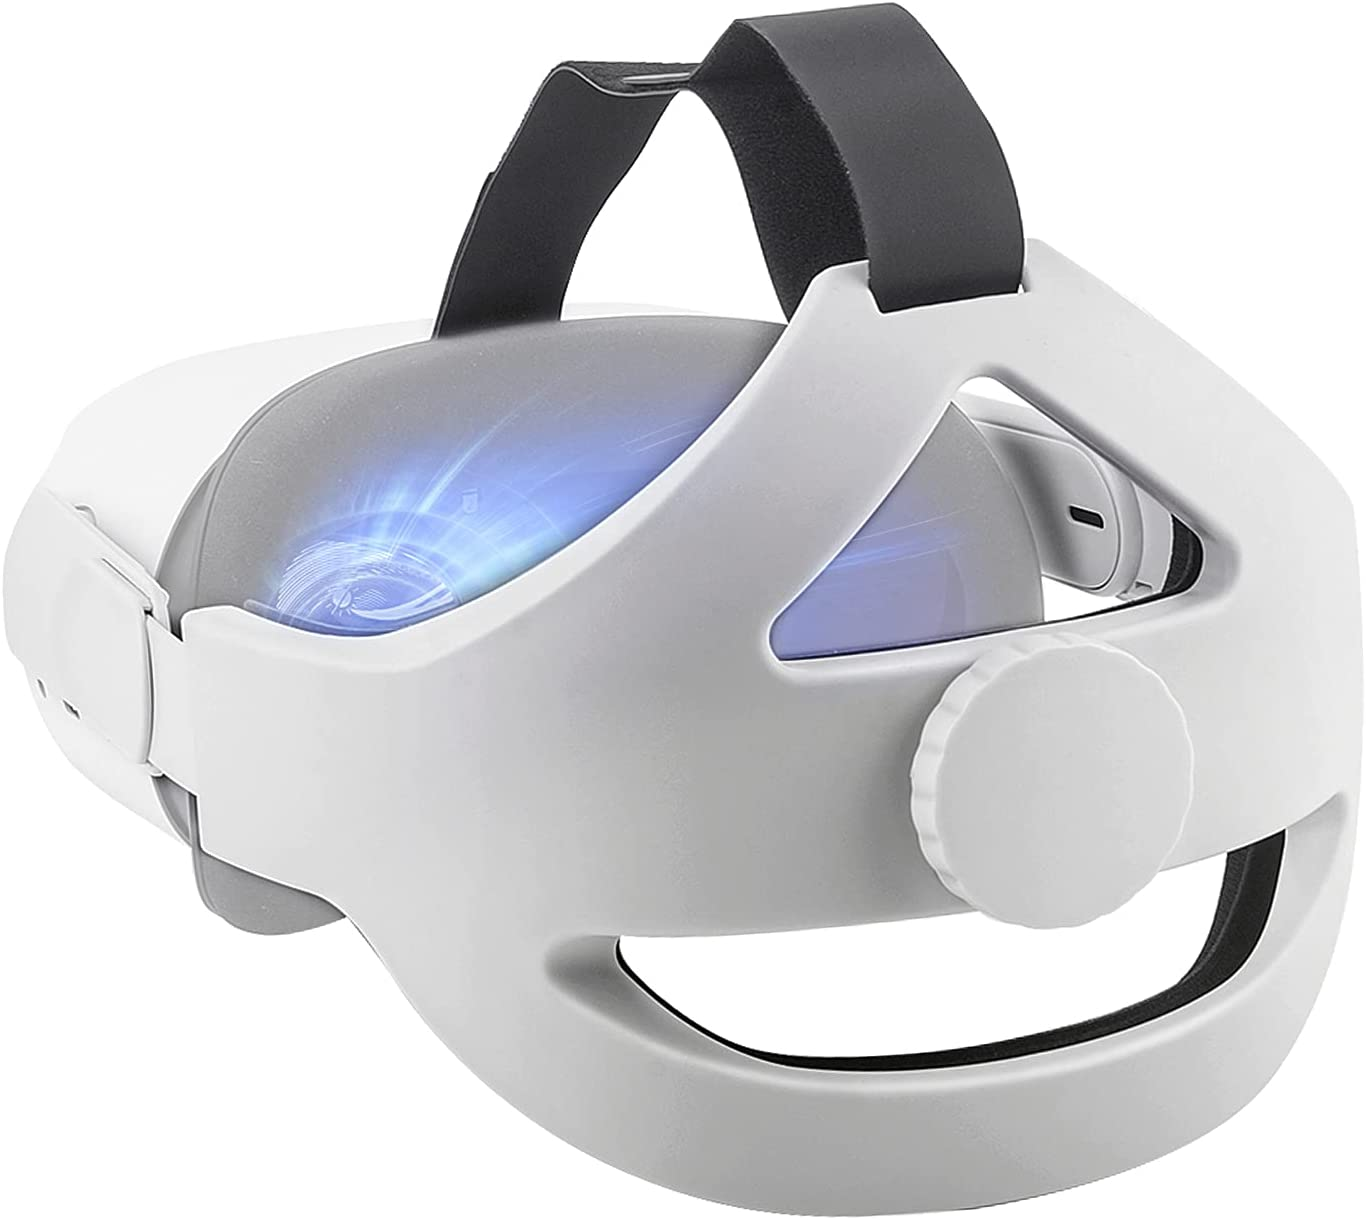 DLseego 2 Elite Strap Quest Headset, Adjustable Head Strap Headband Replacement for Oculus Enhanced Support and Reduce Head Pressure in VR -White